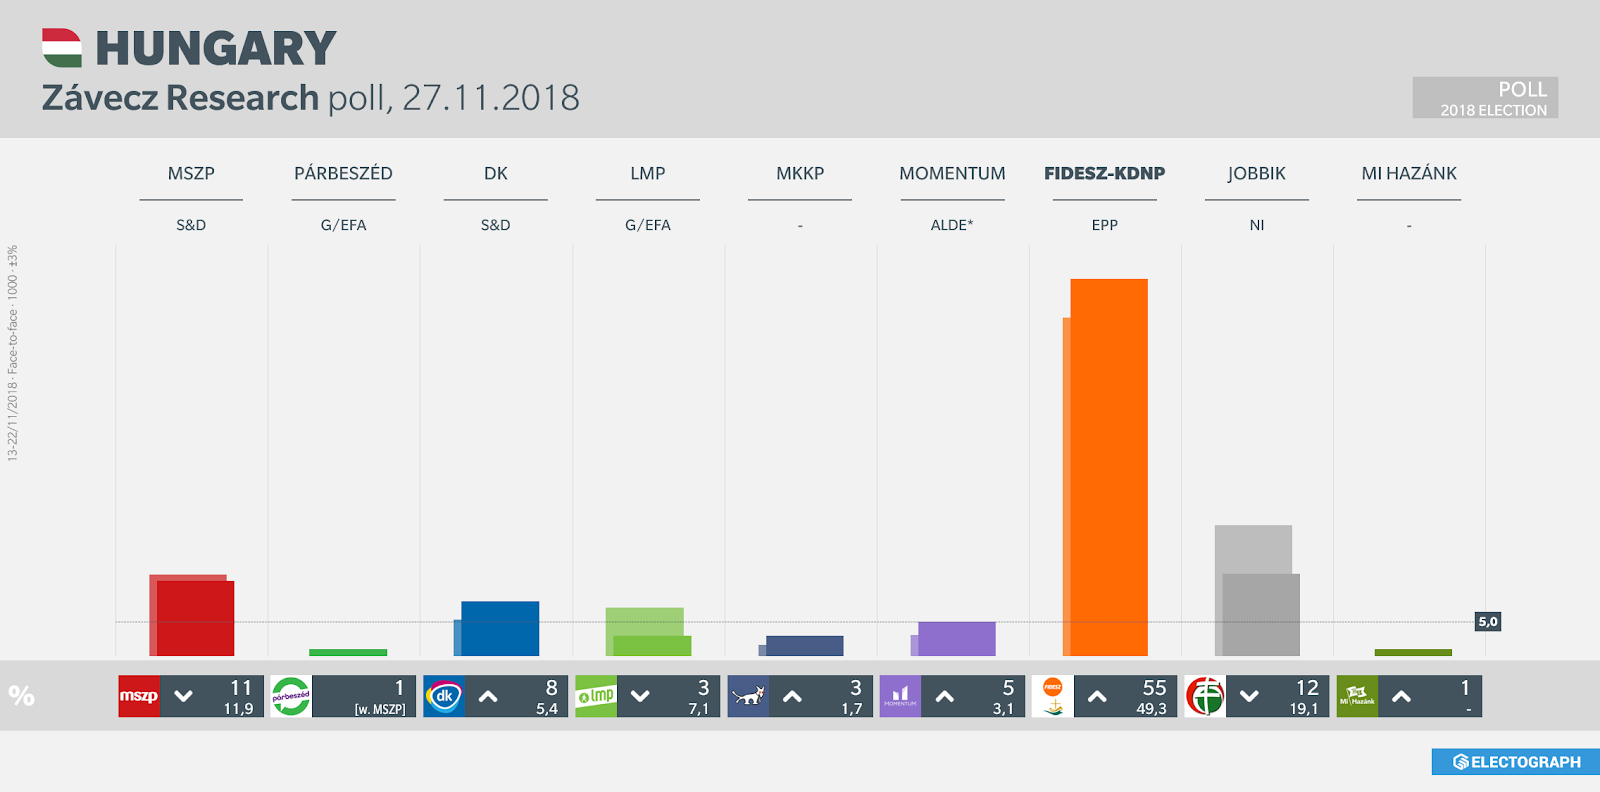 HUNGARY: Závecz poll chart, 27 November 2018